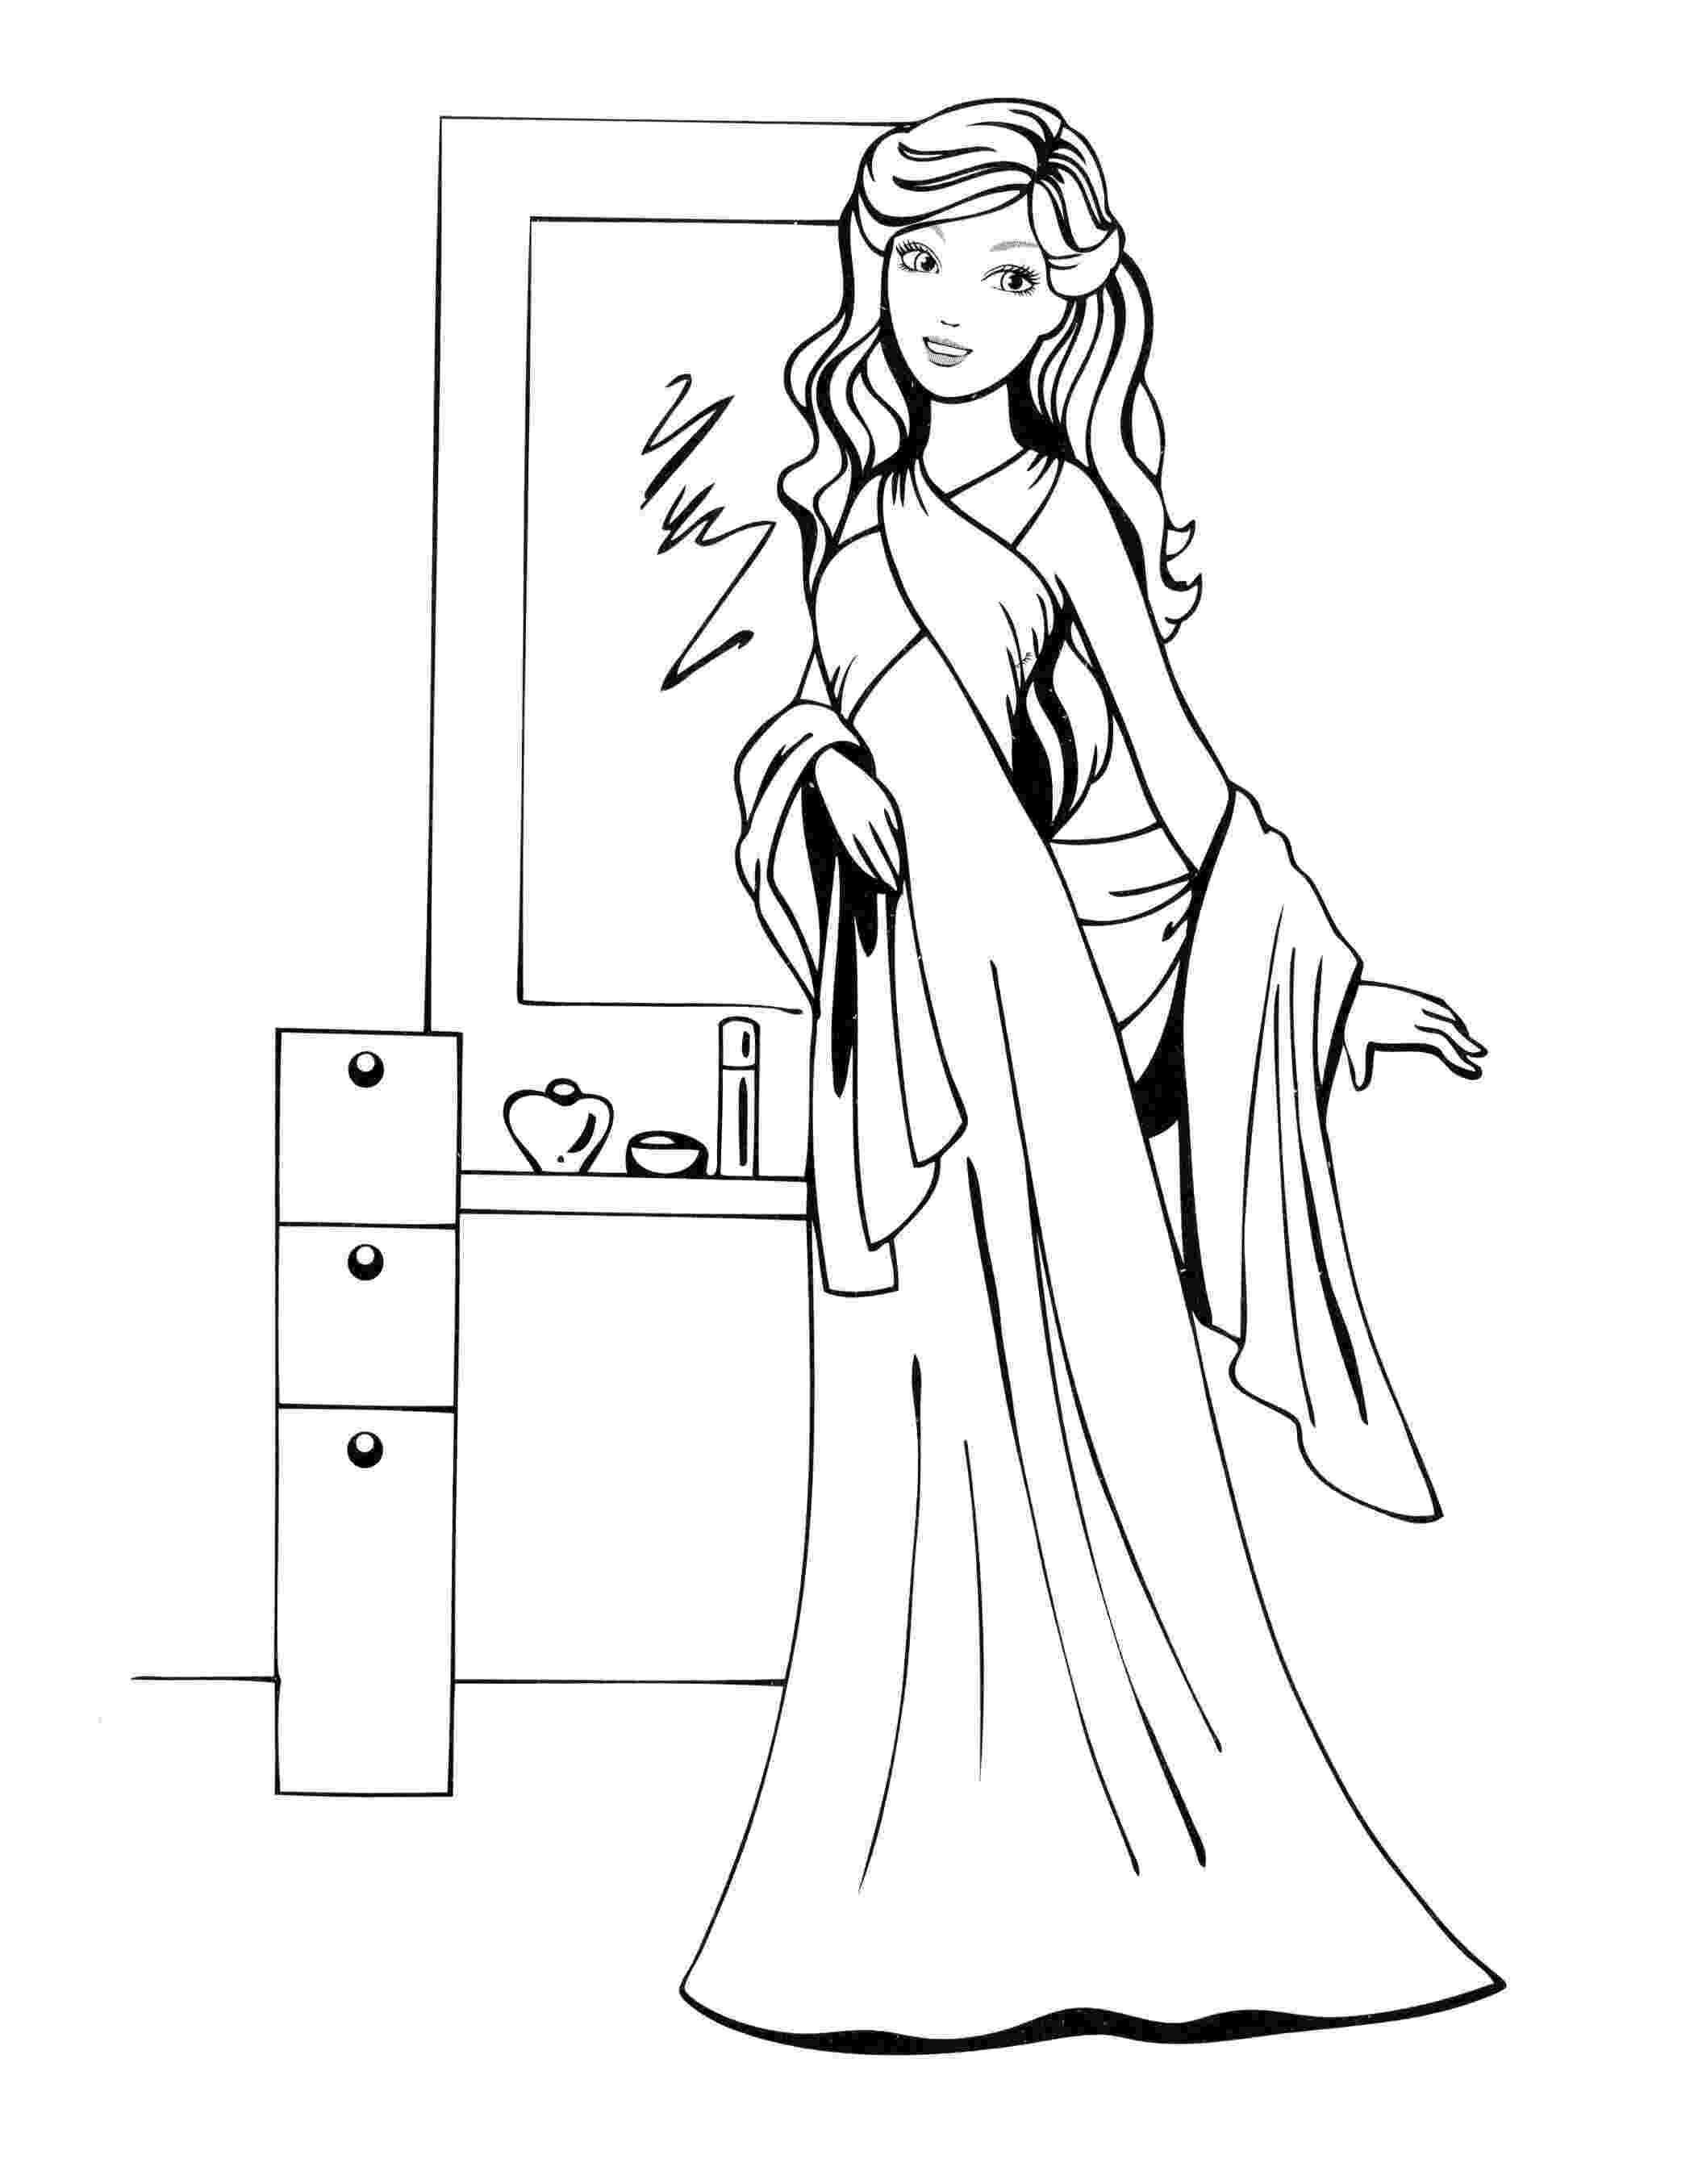 coloring pages for older girls coloring pages for 8910 year old girls to download and for pages girls coloring older